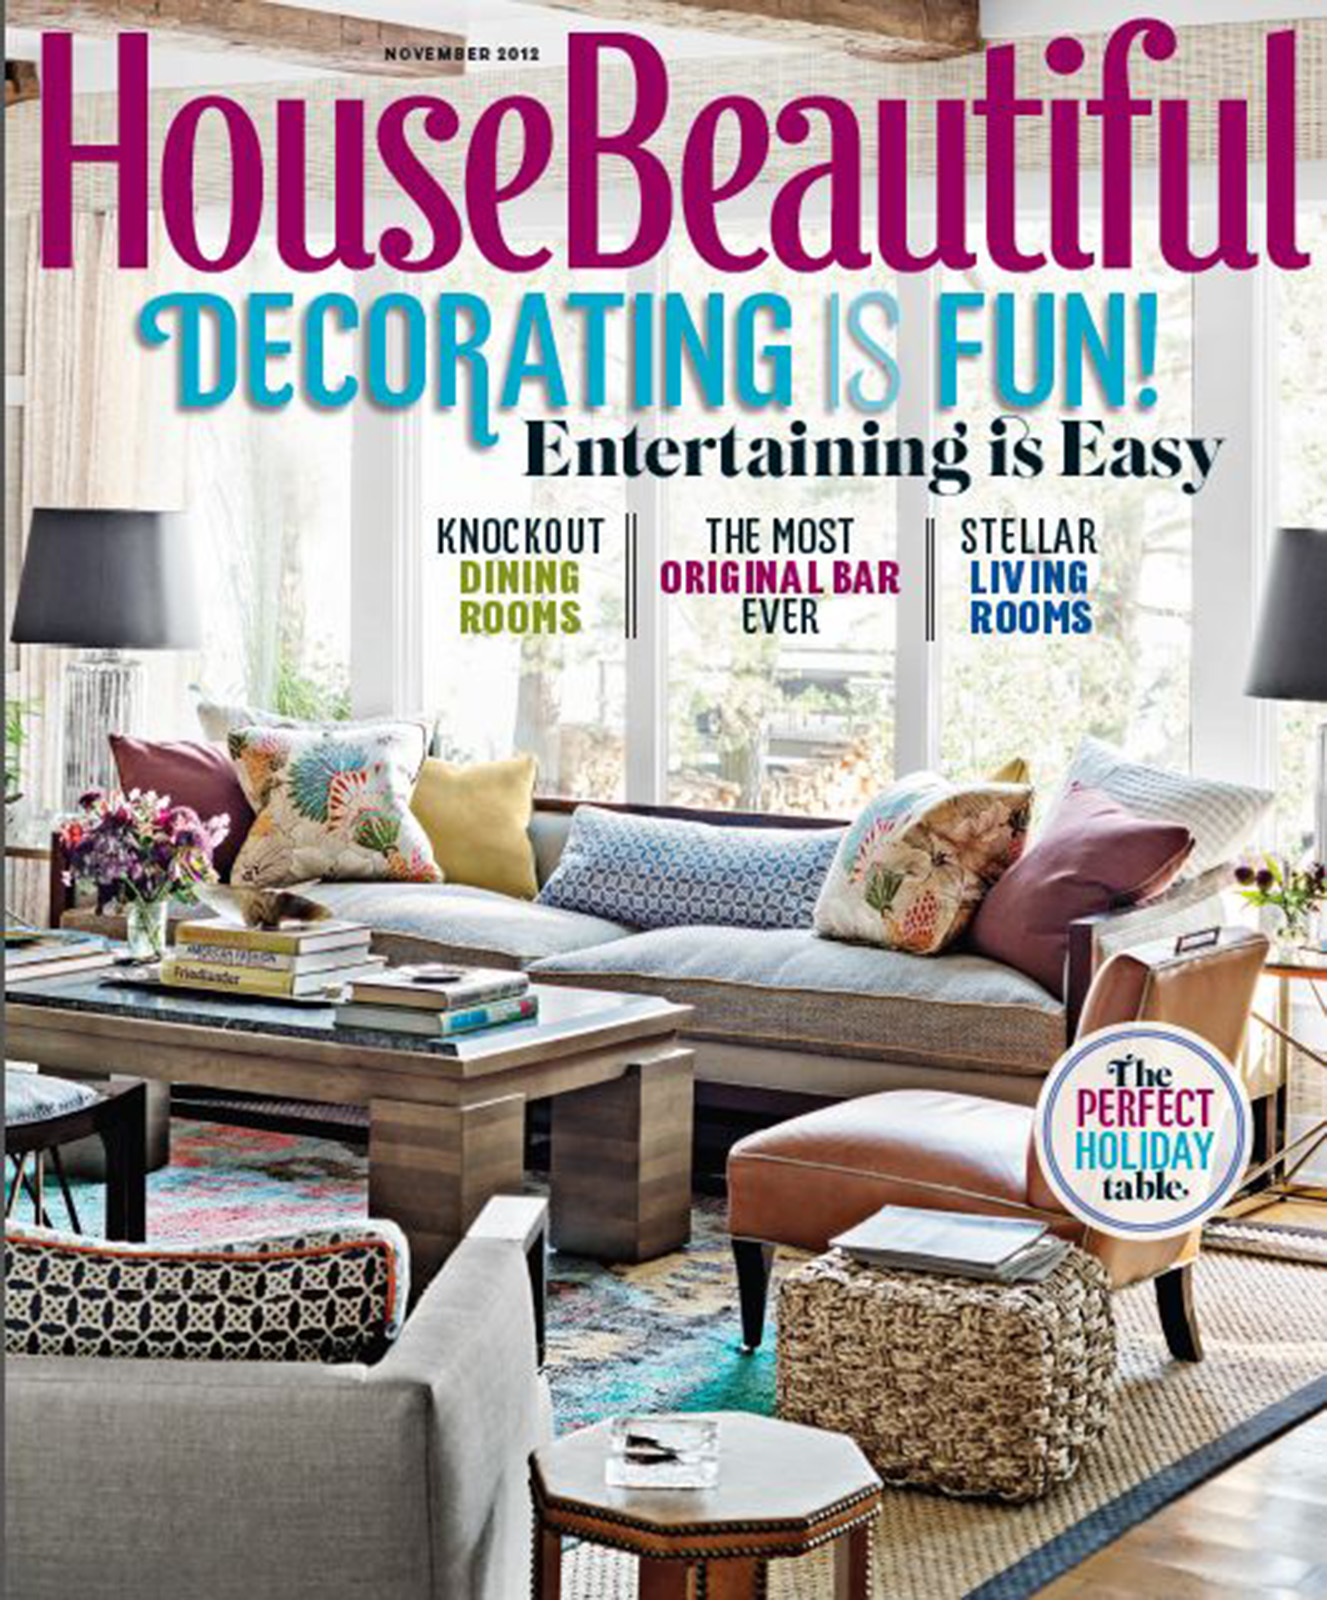 House Beautiful Cover 2012